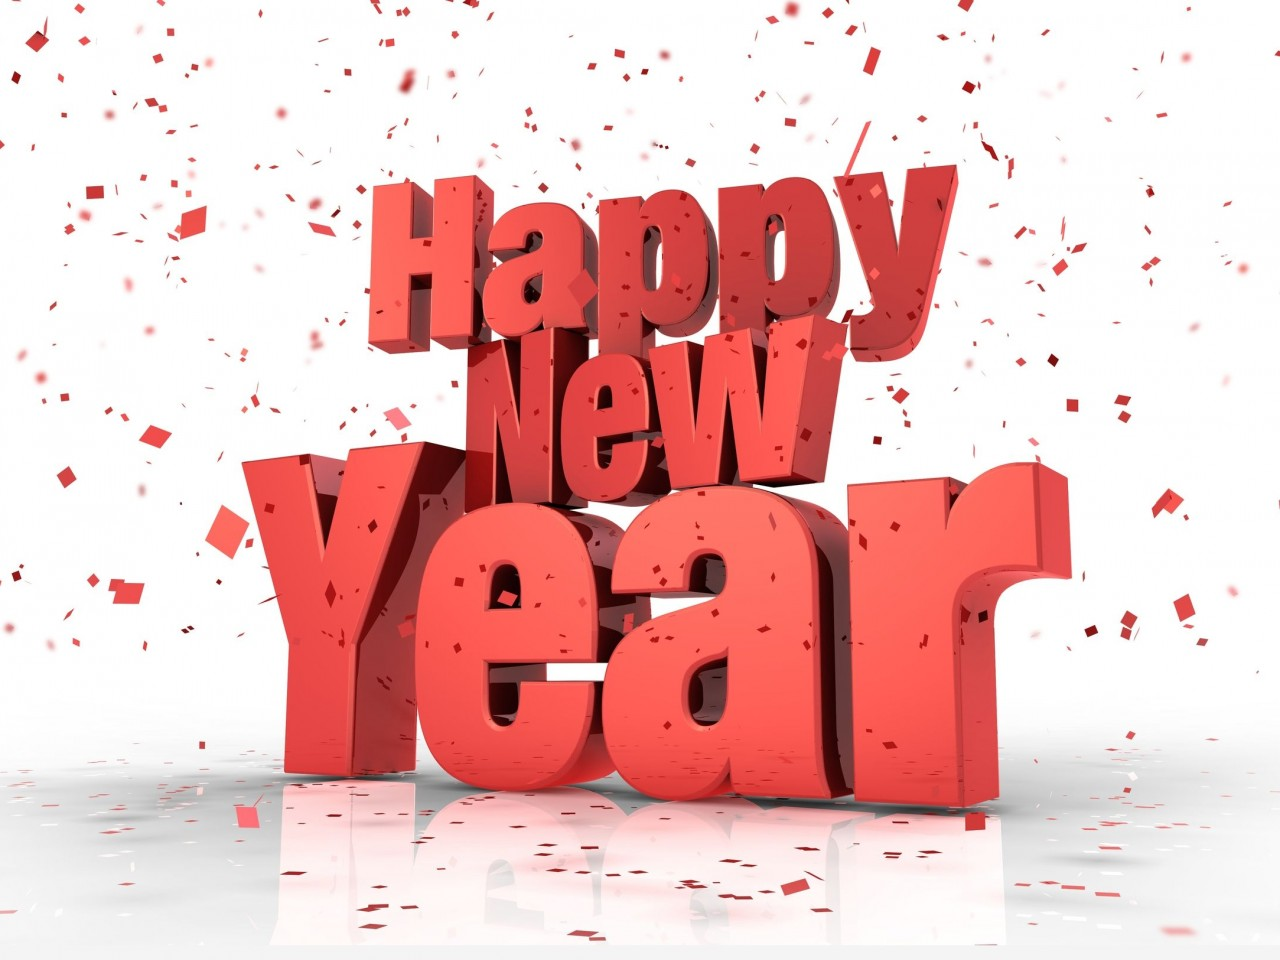 happy new year hd wallpaper high resolution wallpaper